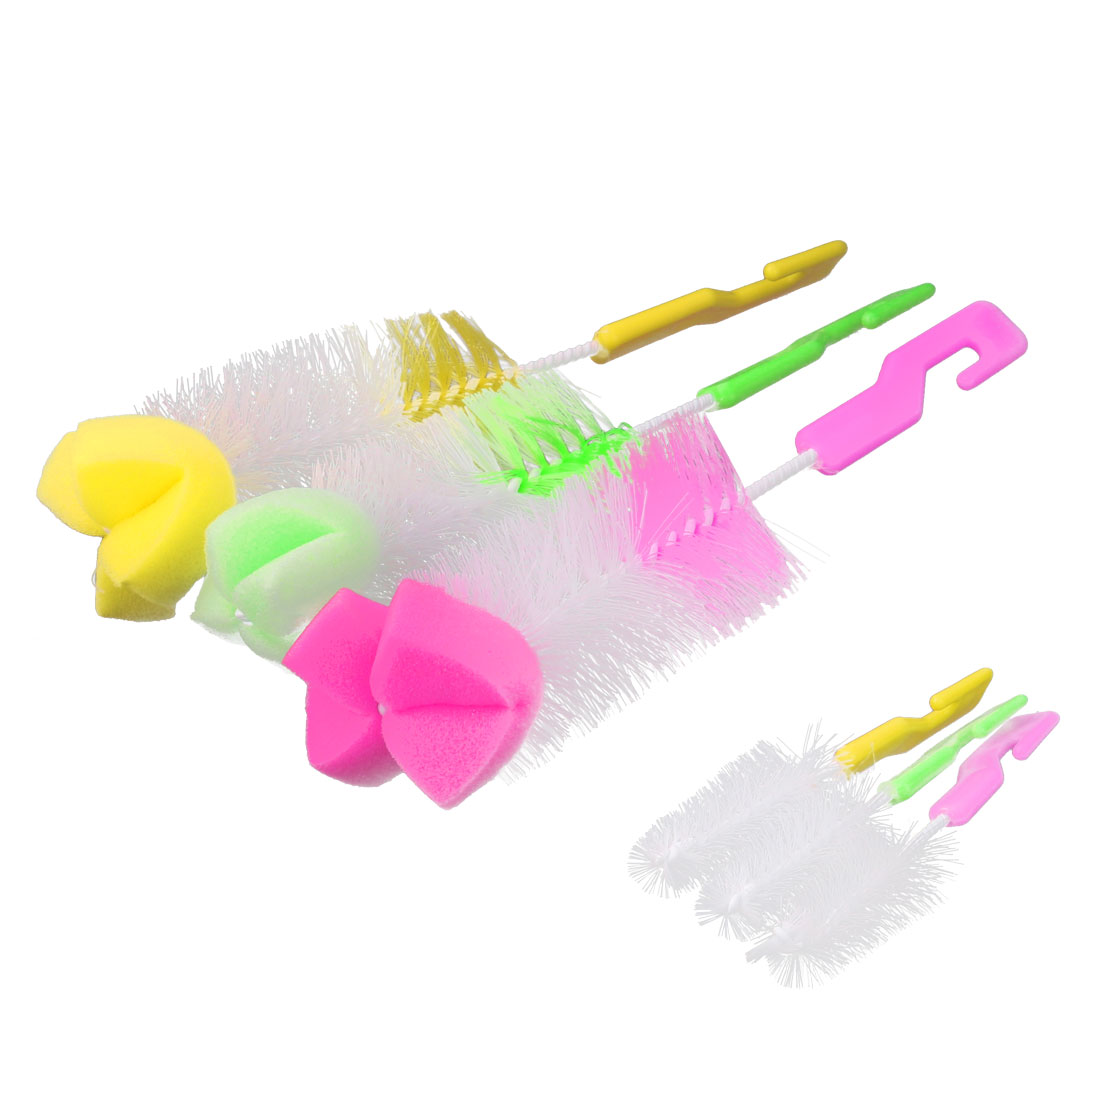 Household Plastic Handle 360 Degree Rotating Milk Bottle Nipple Cleaning Brush 6 in 1